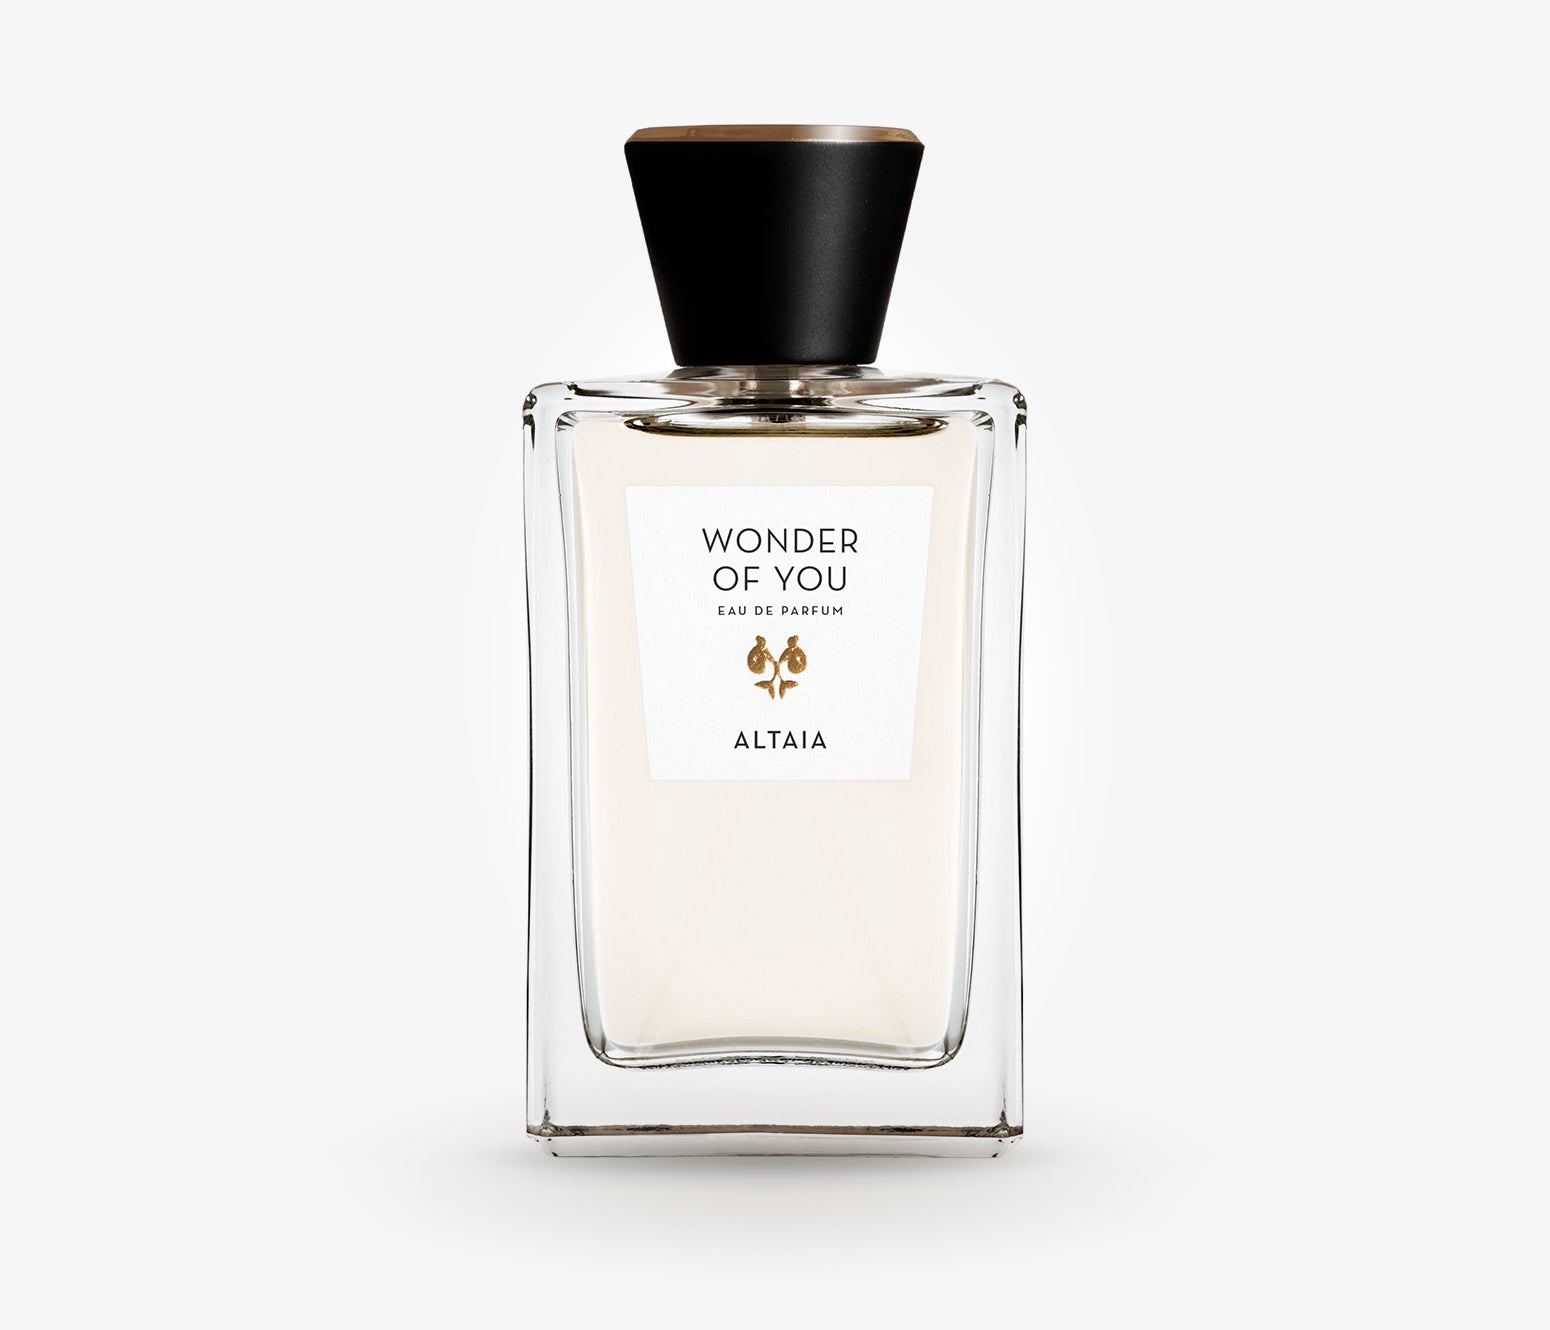 Altaia - Wonder of You - 100ml - WOT001 - product image - Fragrance - Les Senteurs